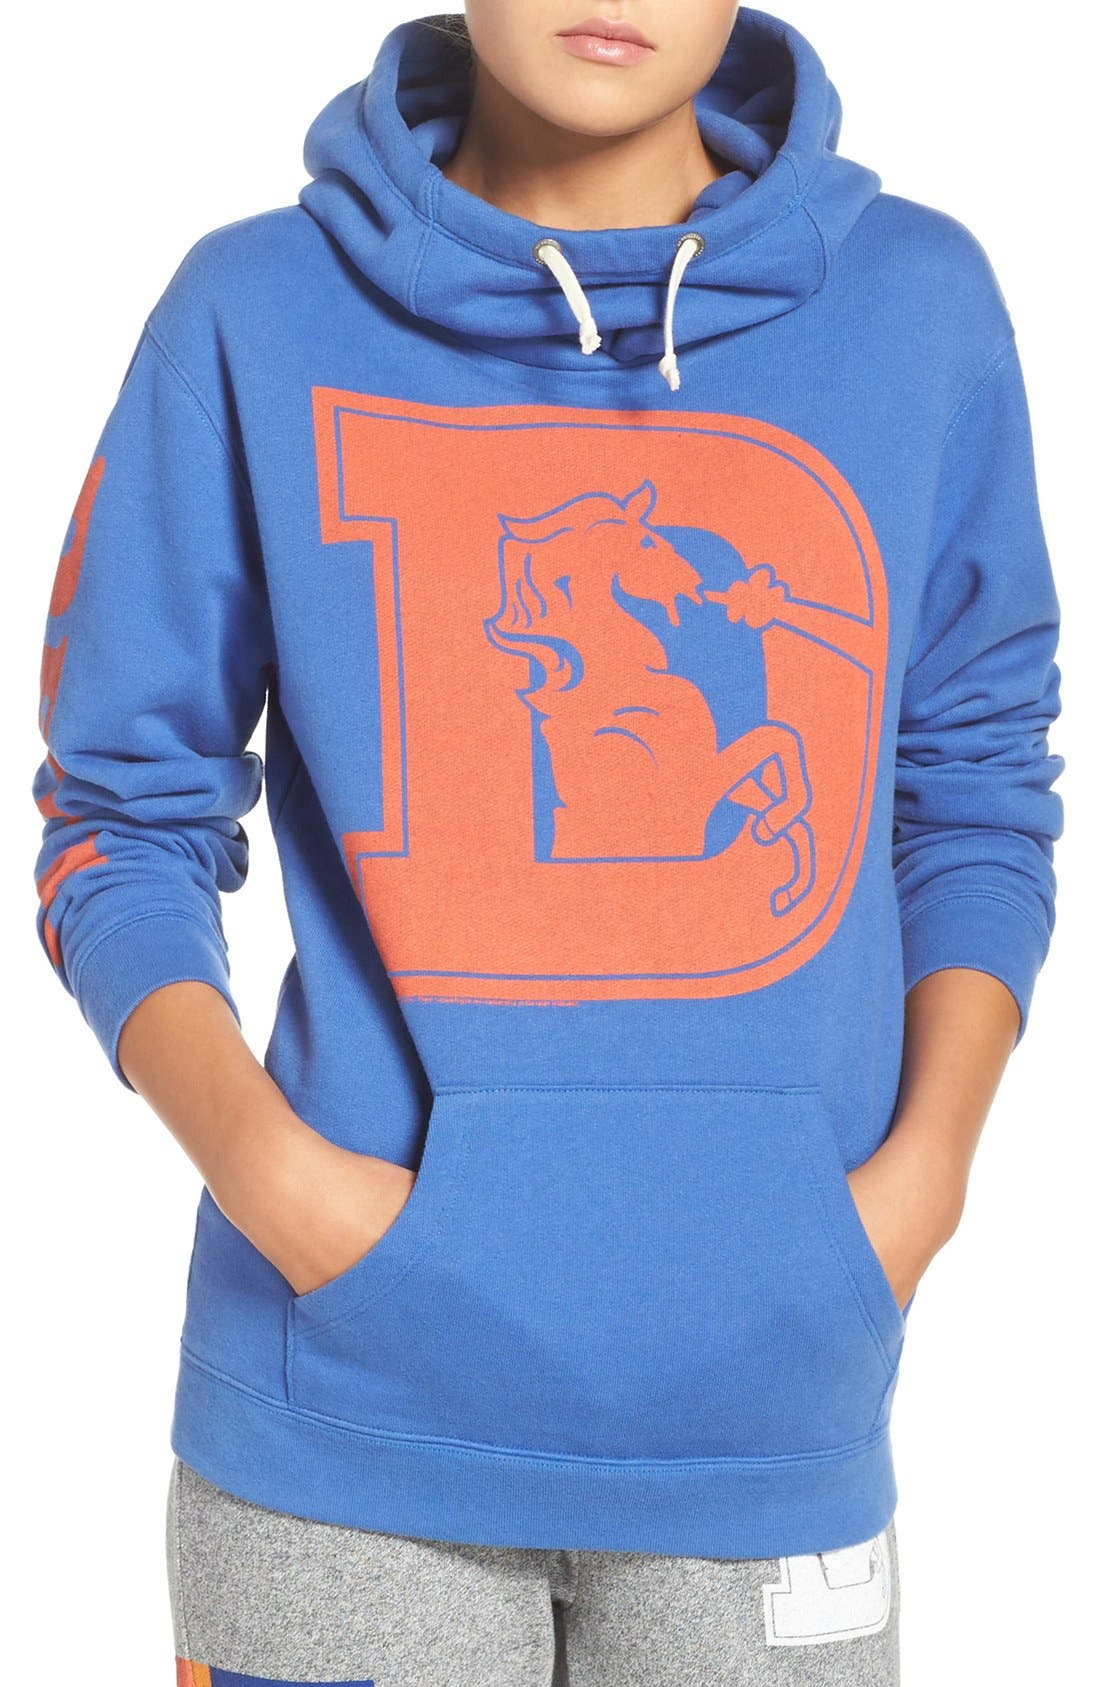 Alternate Image 1 Selected - Junk Food 'Denver Broncos' Hooded Sweatshirt